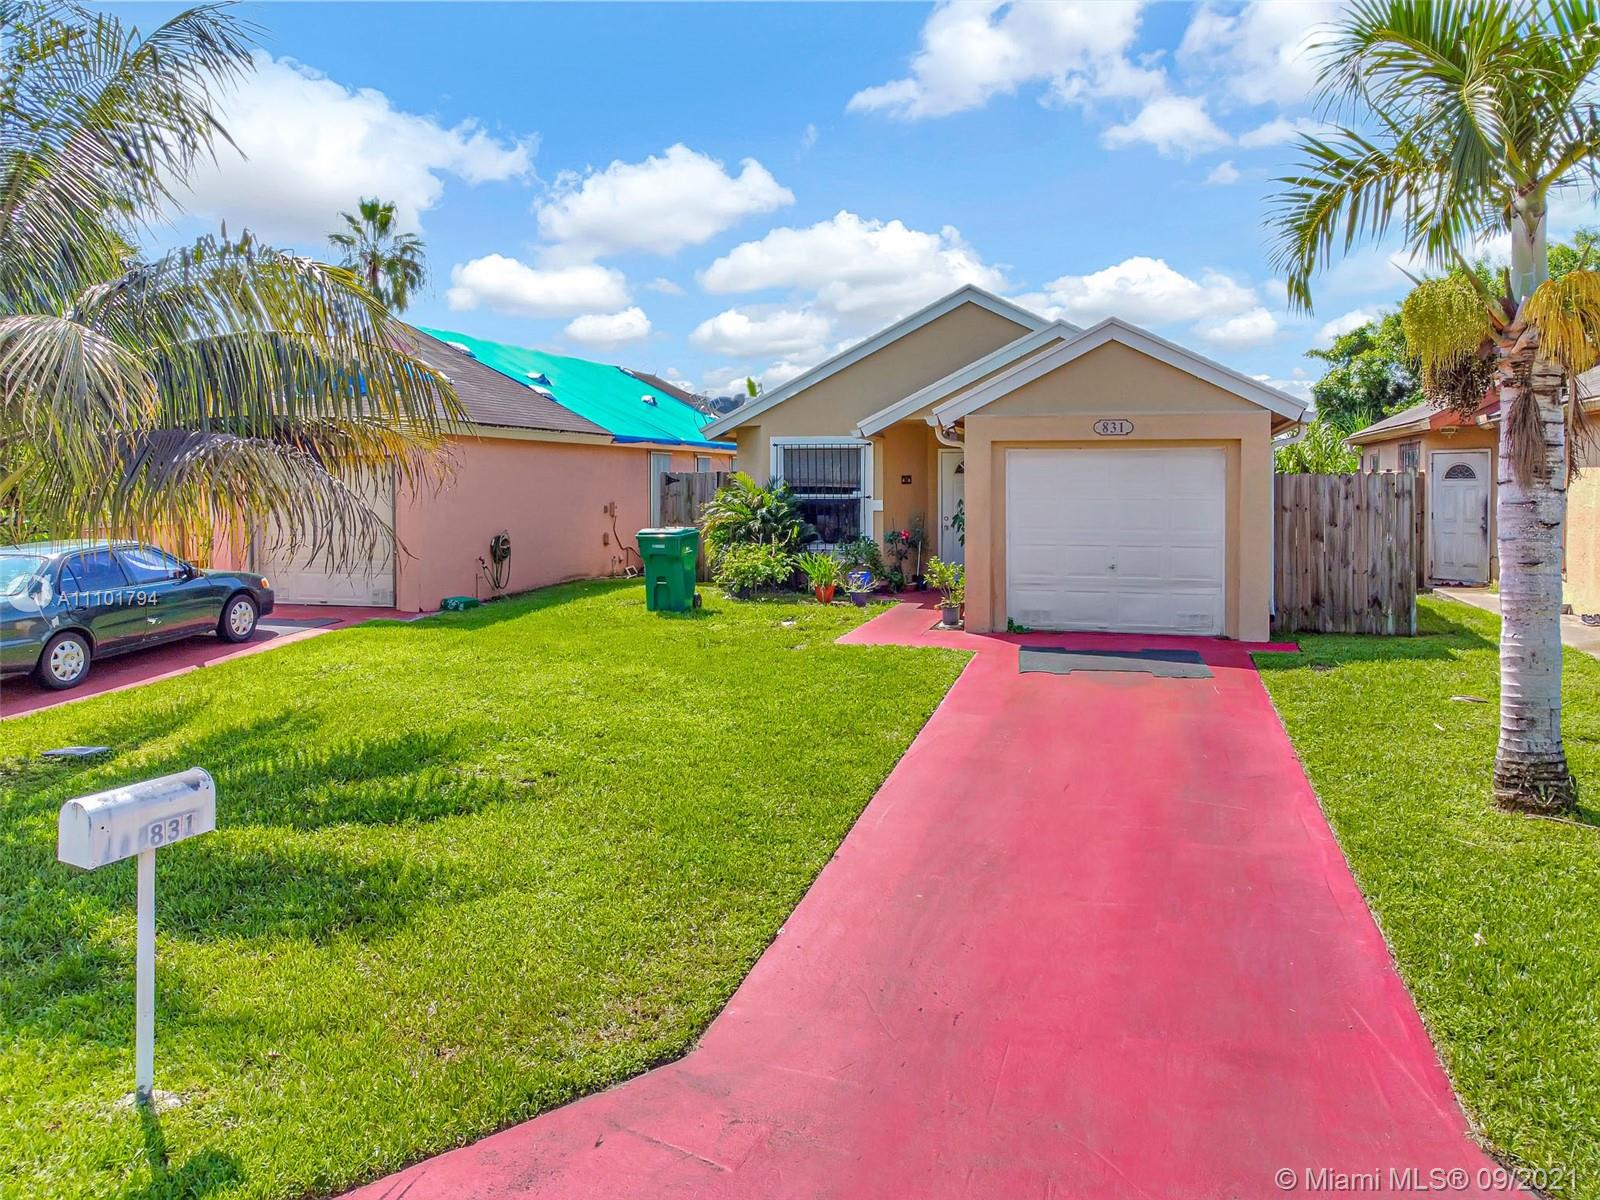 Single Family Home For Sale VILLAS OF PALM BAY1,053 Sqft